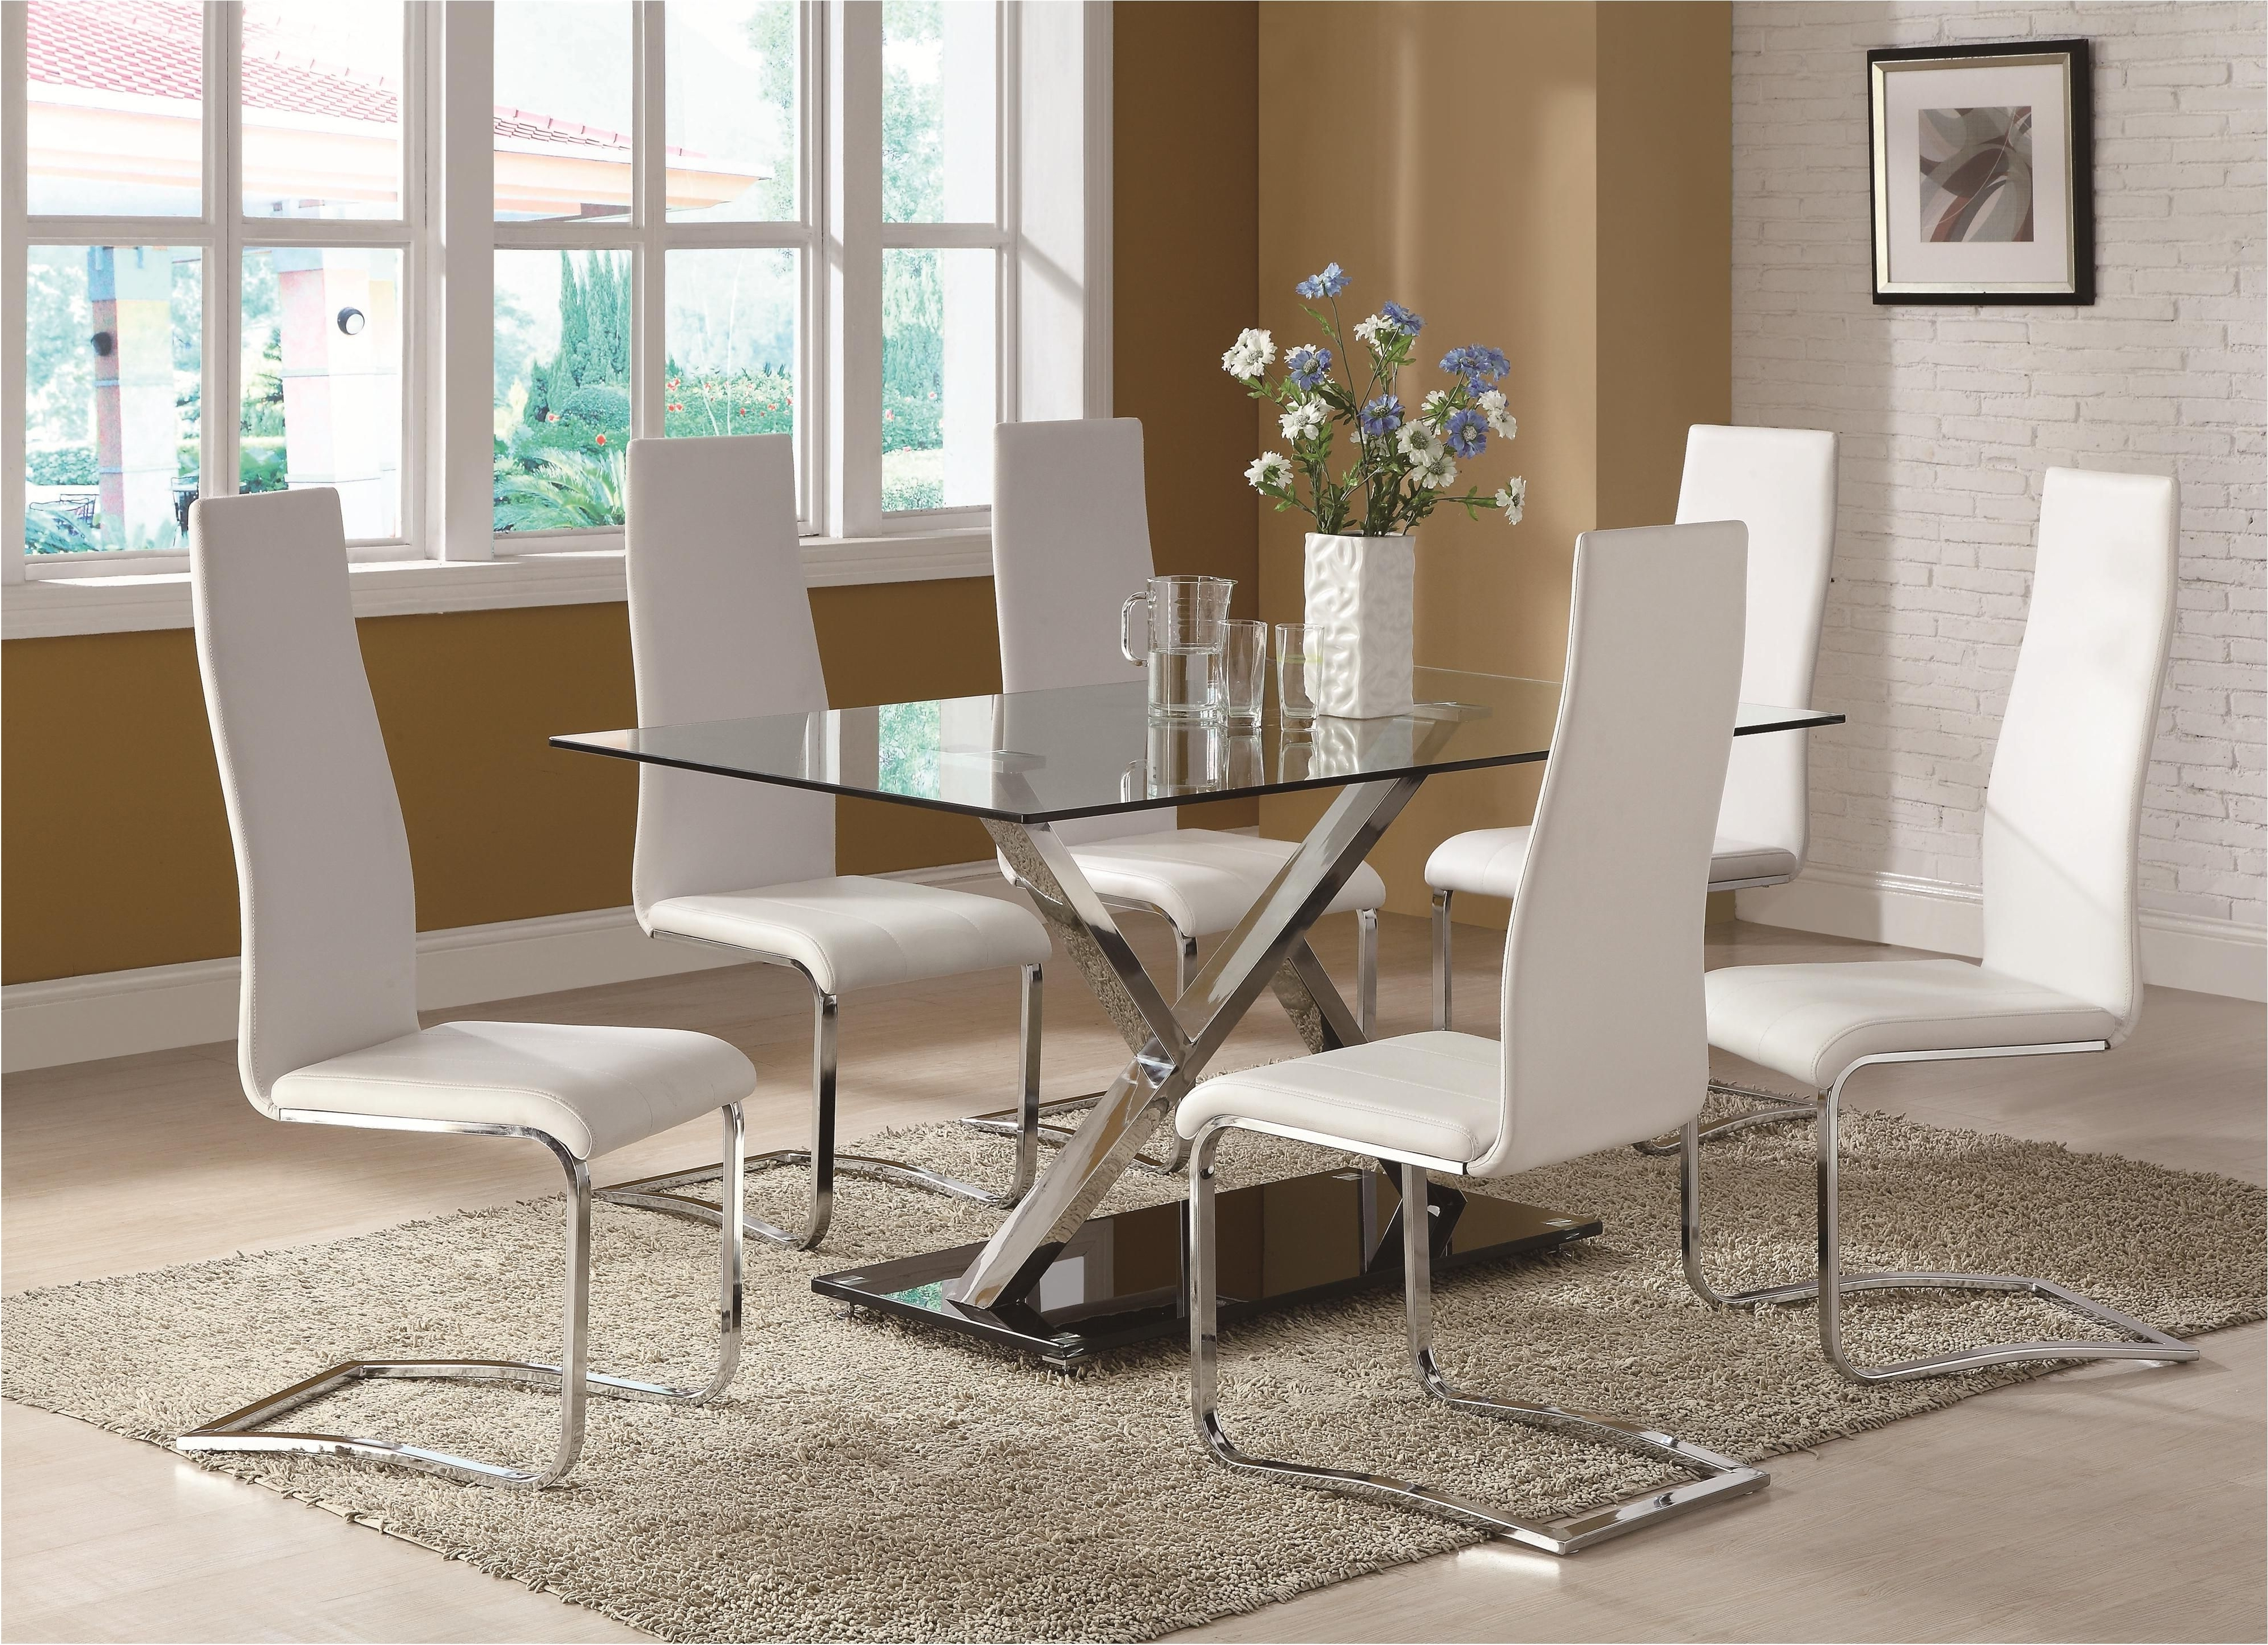 Current Nice Breathtaking Modern Glass Dining Table Set 2 Room Sets Be Black In Modern Dining Room Furniture (View 15 of 25)